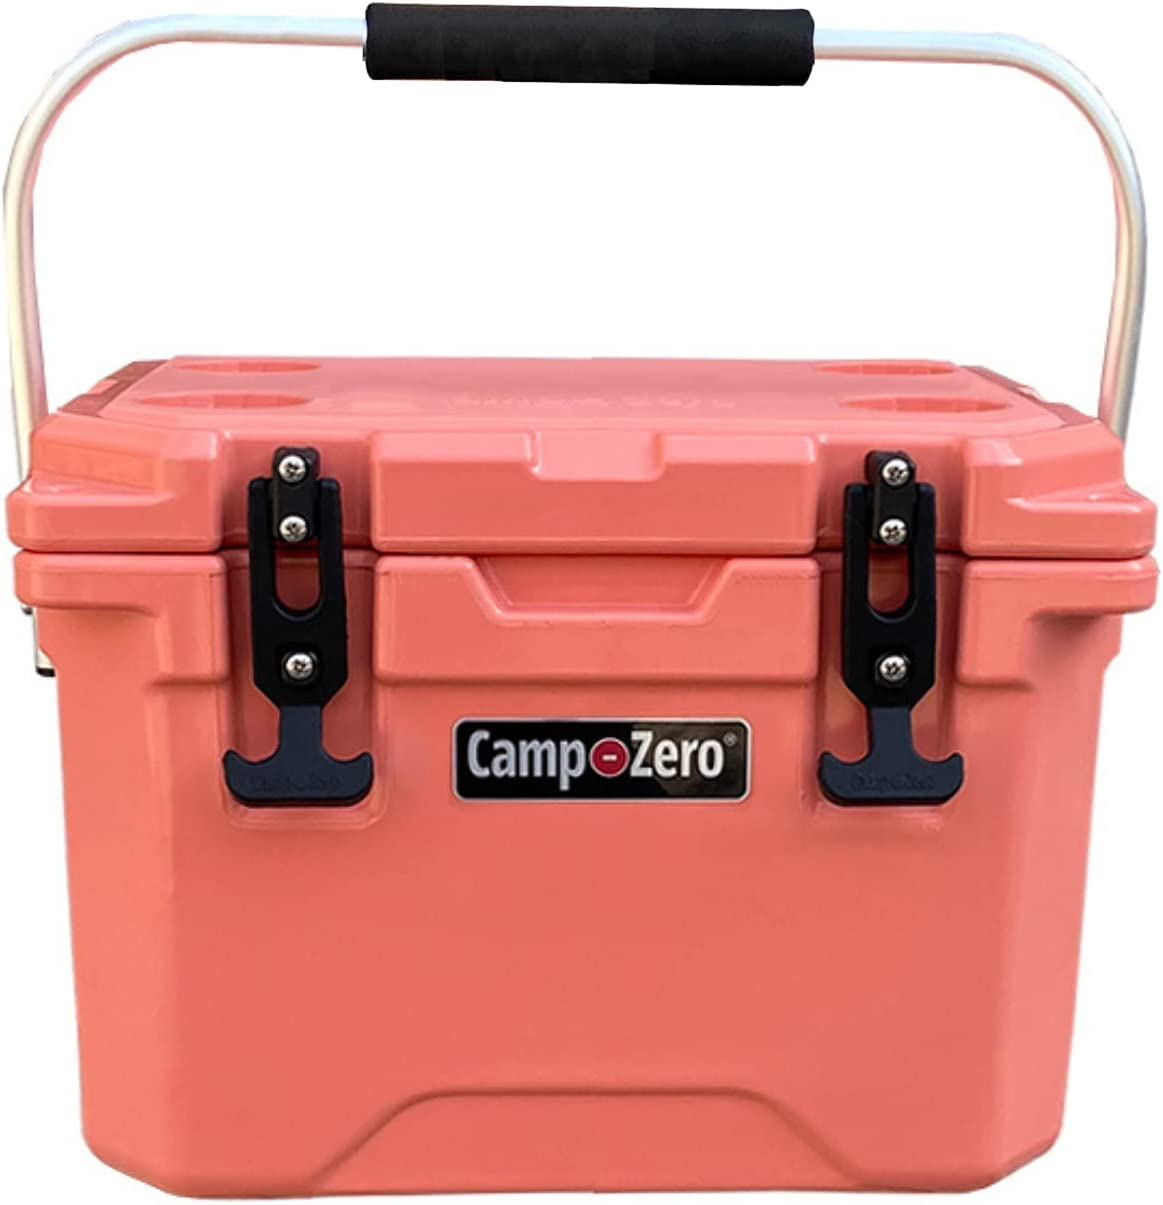 CAMP-ZERO 20 Premium Super sale Cooler with 4 Molded-in Holders New mail order Fol Cup and